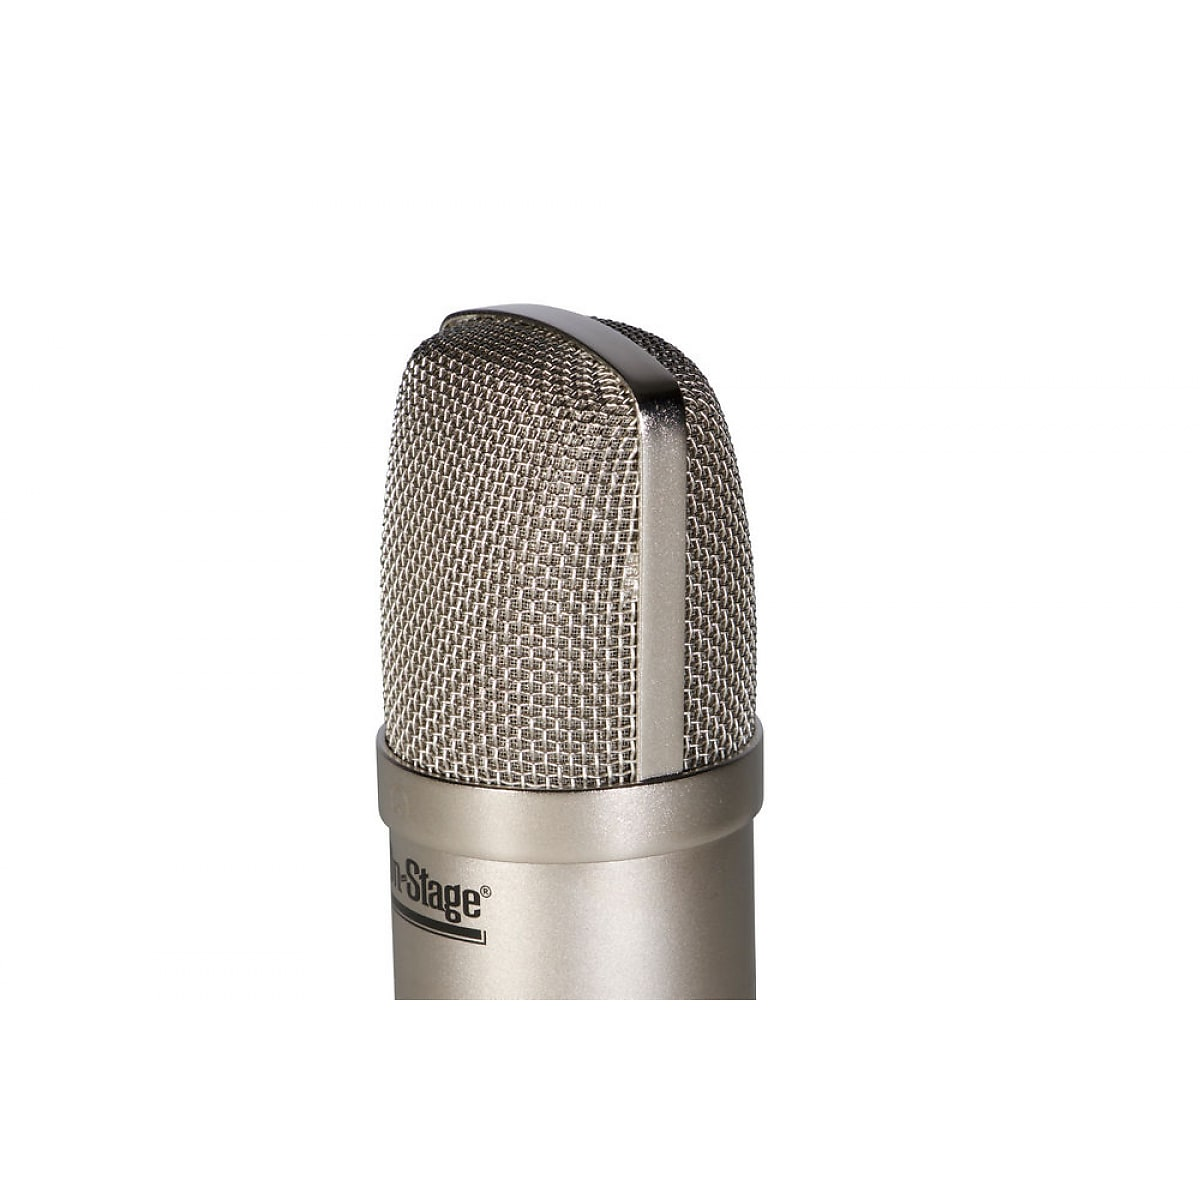 On-Stage AS800 Large-Diaphragm FET Condenser Microphone